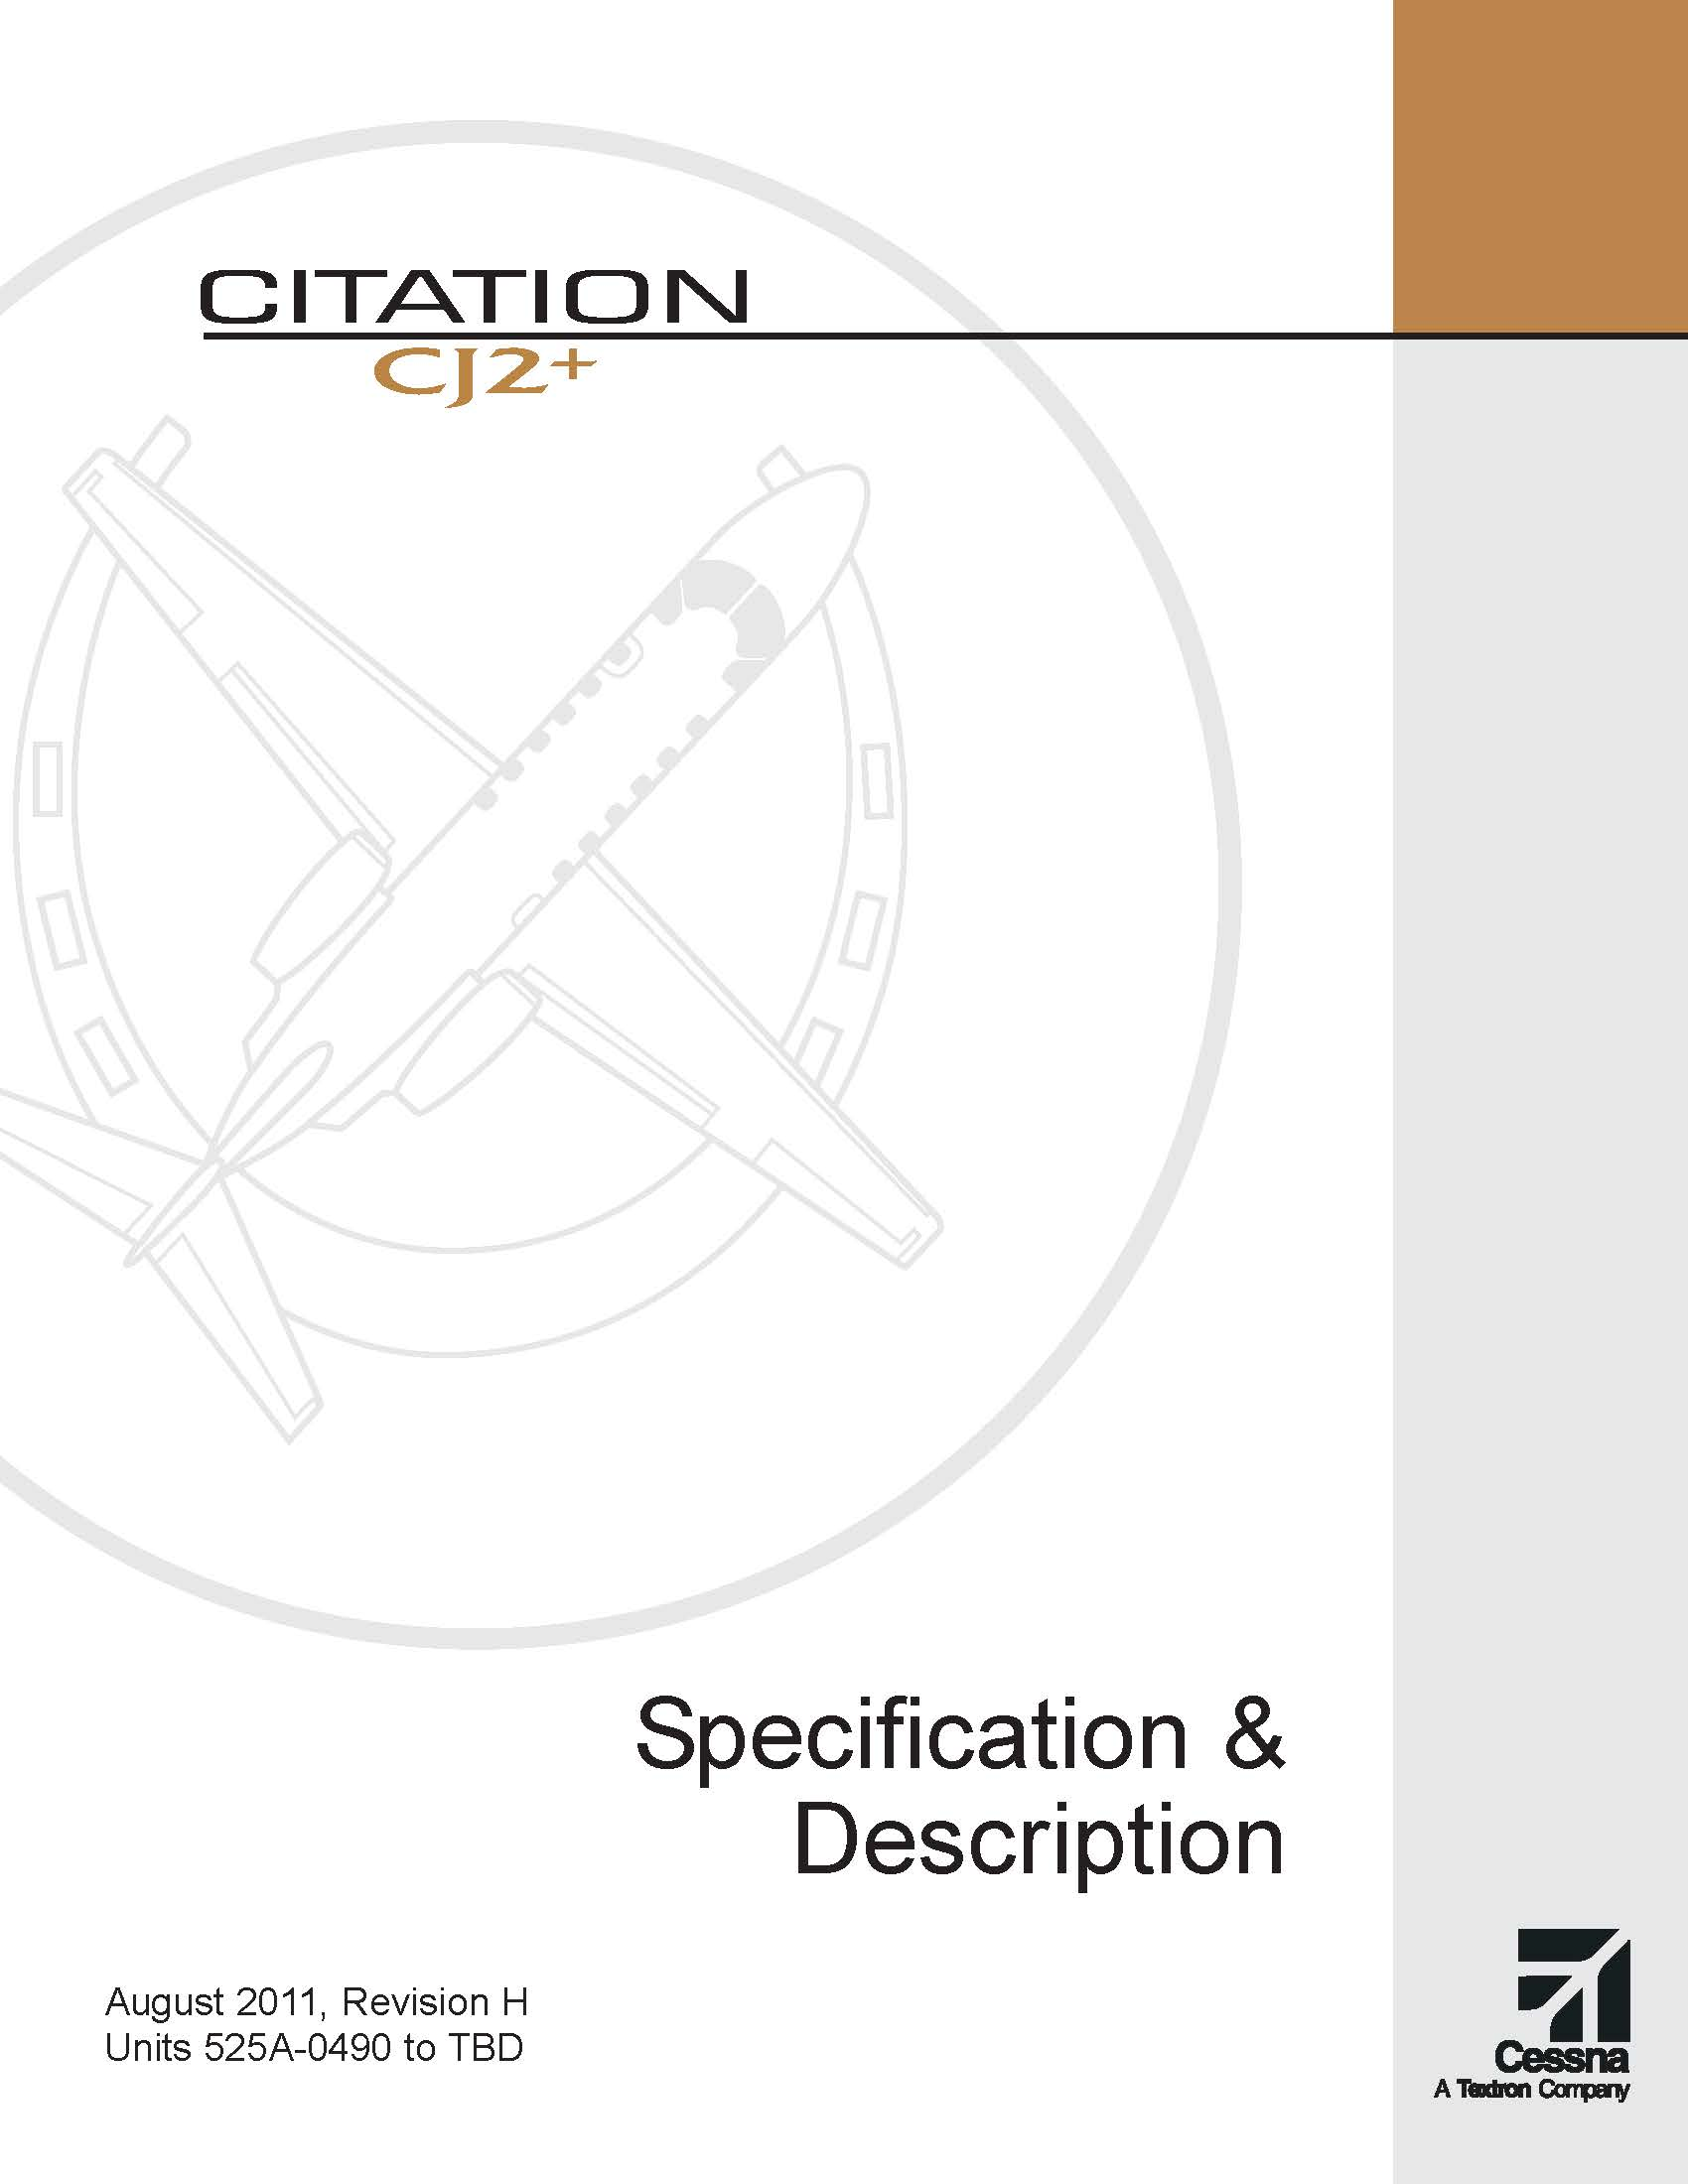 Citation CJ2+ spec & description electronic brochure